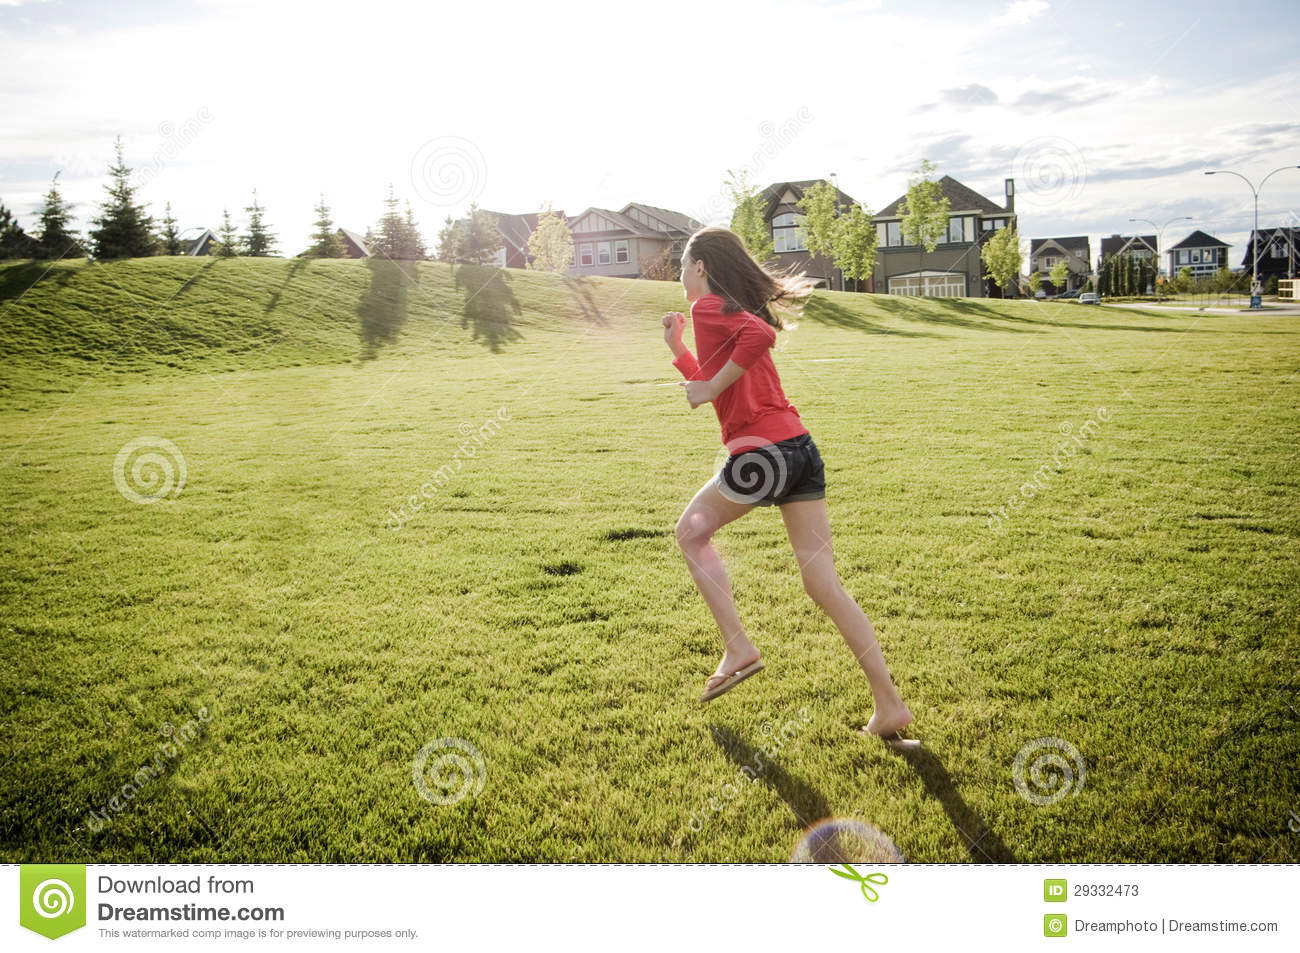 Teen girl running in the open field in her community in summer with